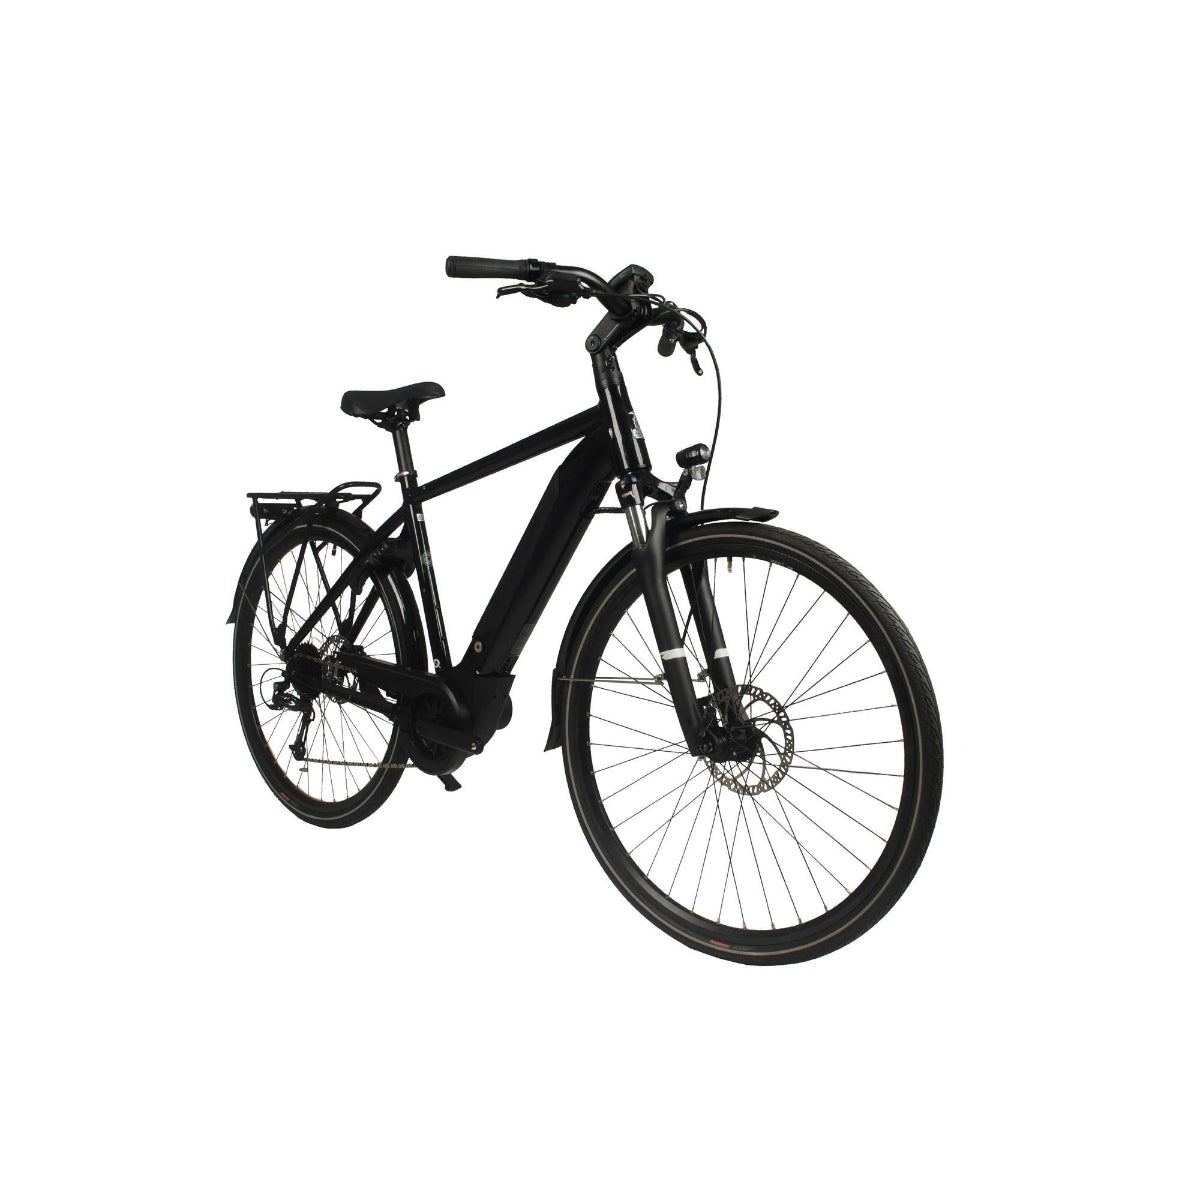 Raleigh Centros Crossbar Derailleur Electric Hybrid Bike - 2021